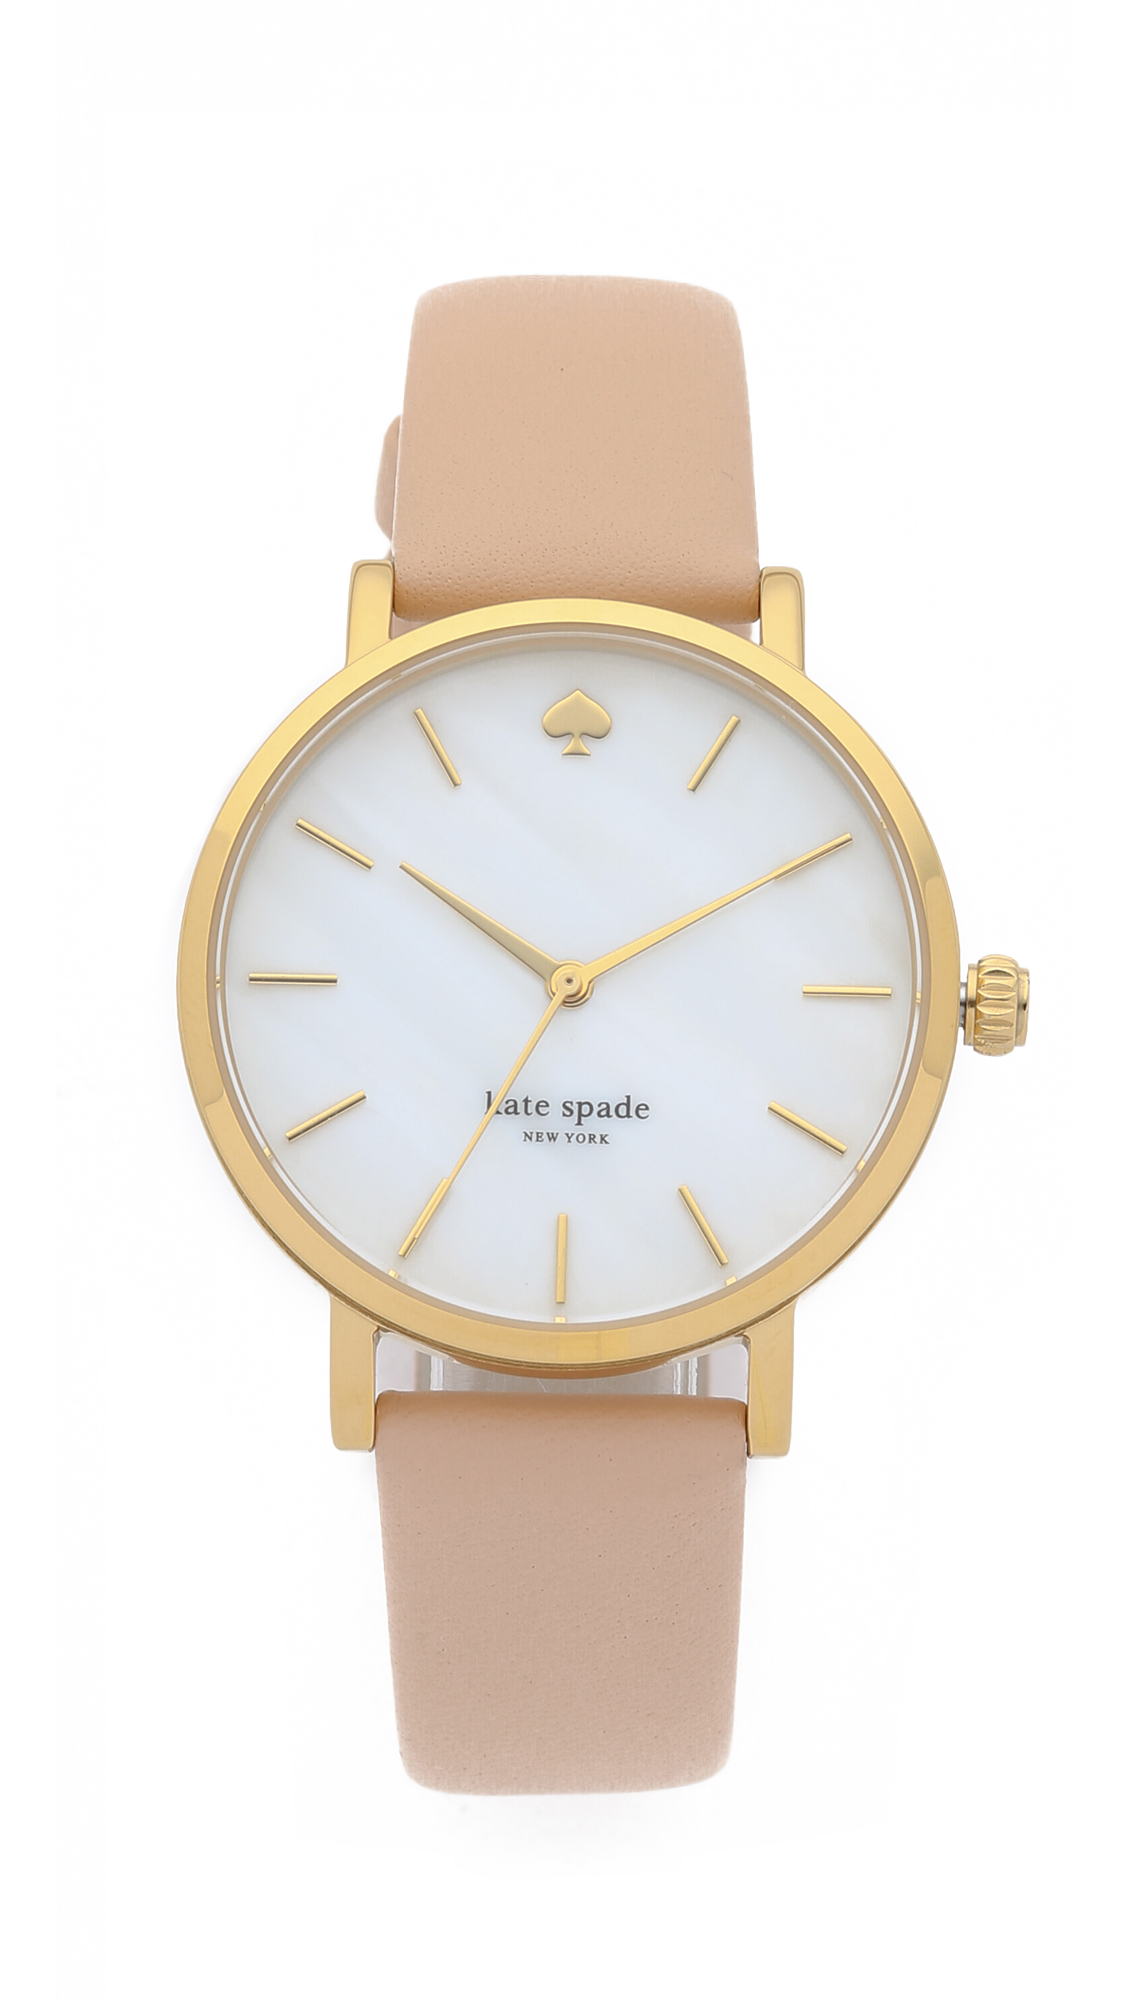 Kate Spade New York Metro Classic Watch - Vachetta at Shopbop